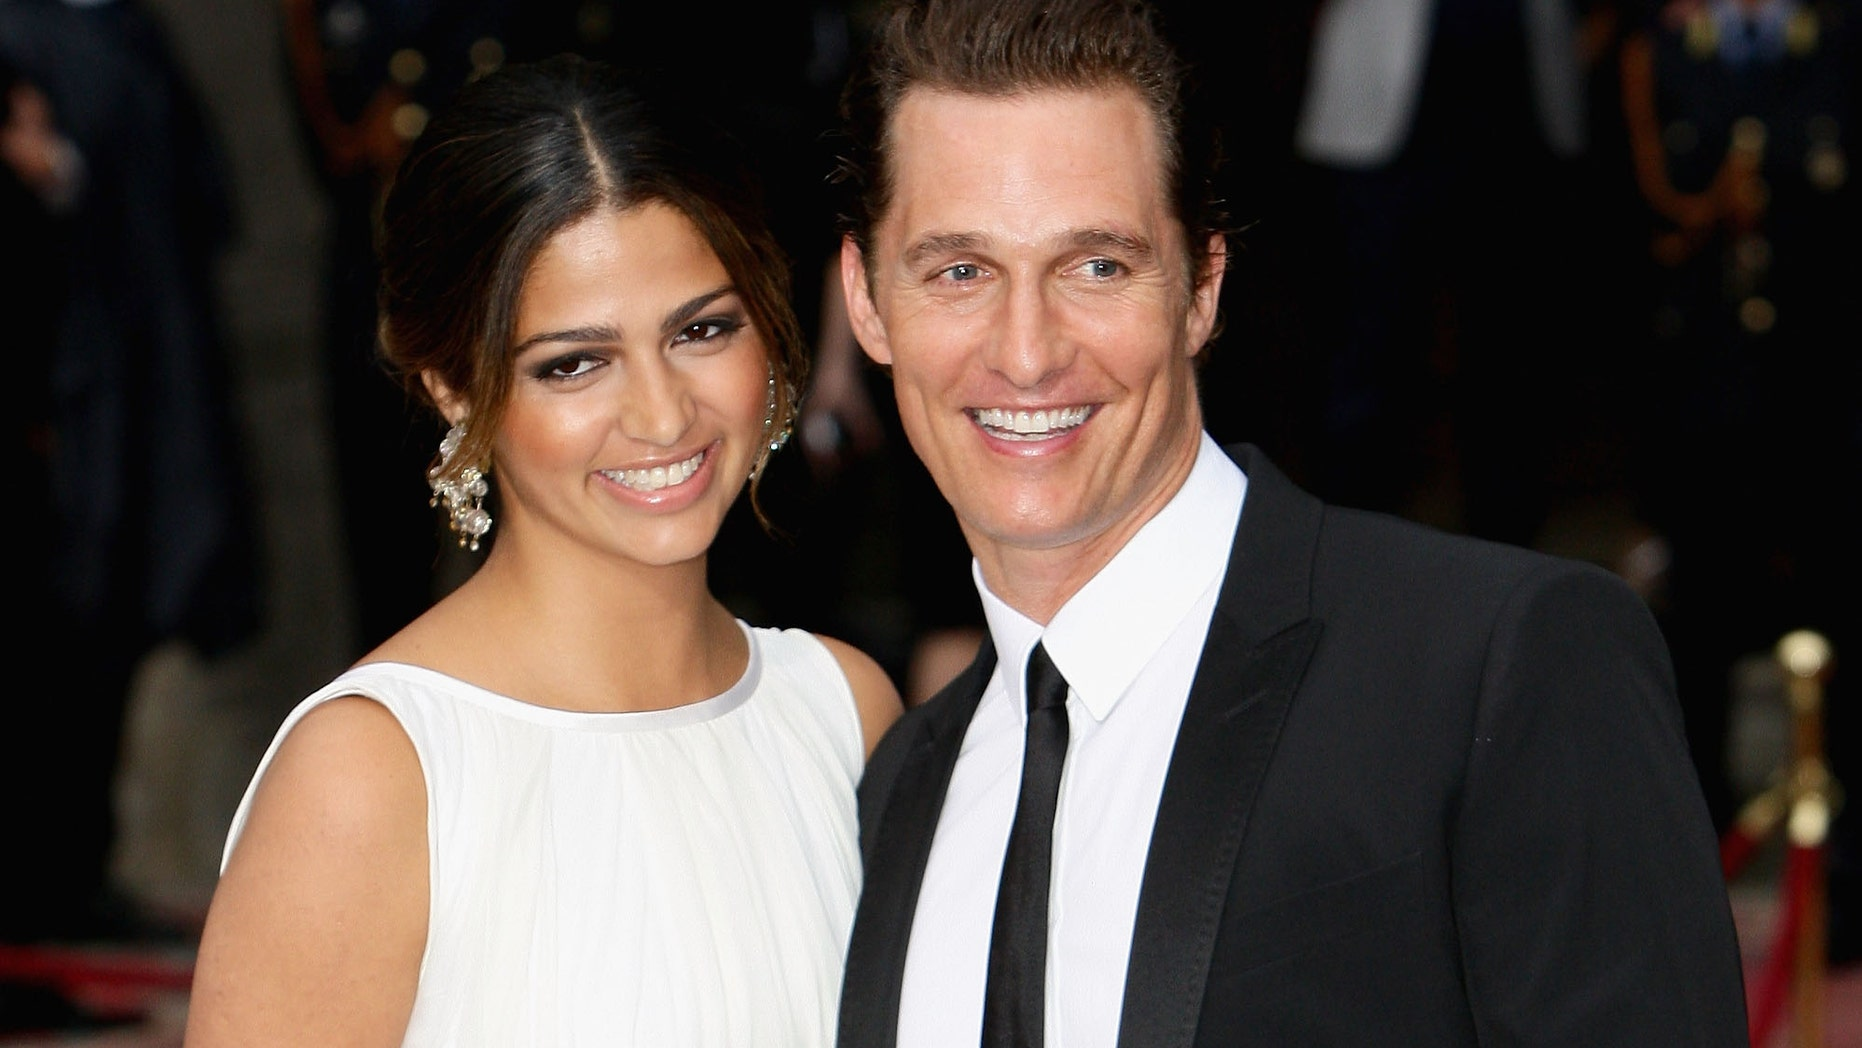 """MILAN, ITALY - JUNE 19:  Camila Alves and Matthew McConaughey attend the Dolce & Gabbana """"20 Years of Menswear"""" during Milan Fashion Week Spring/Summer 2011 on June 19, 2010 in Milan, Italy.  (Photo by Vittorio Zunino Celotto/Getty Images)"""